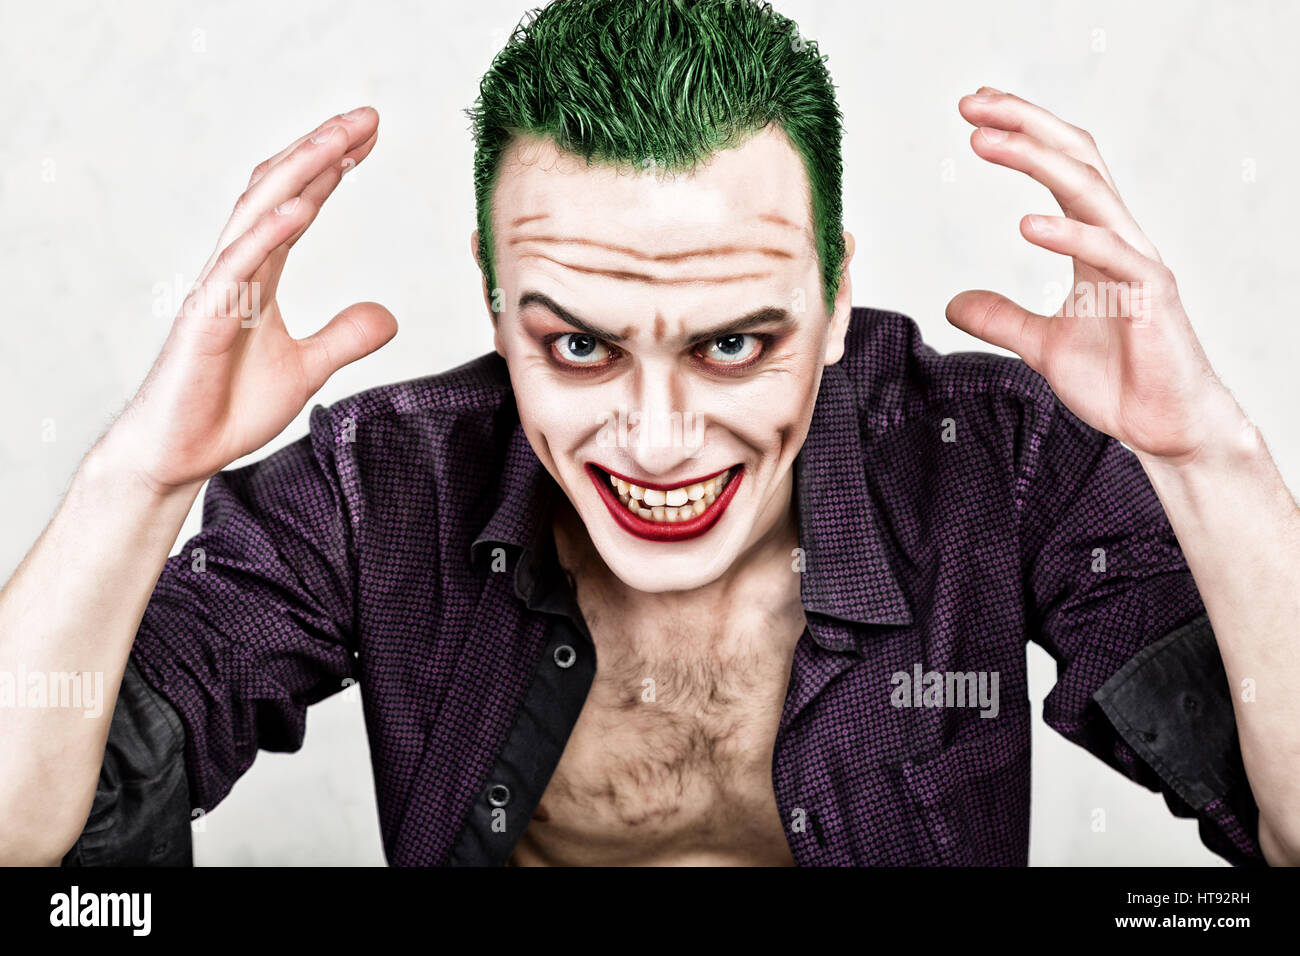 Verwonderend guy with crazy joker face, green hair and idiotic smike. carnaval UD-43